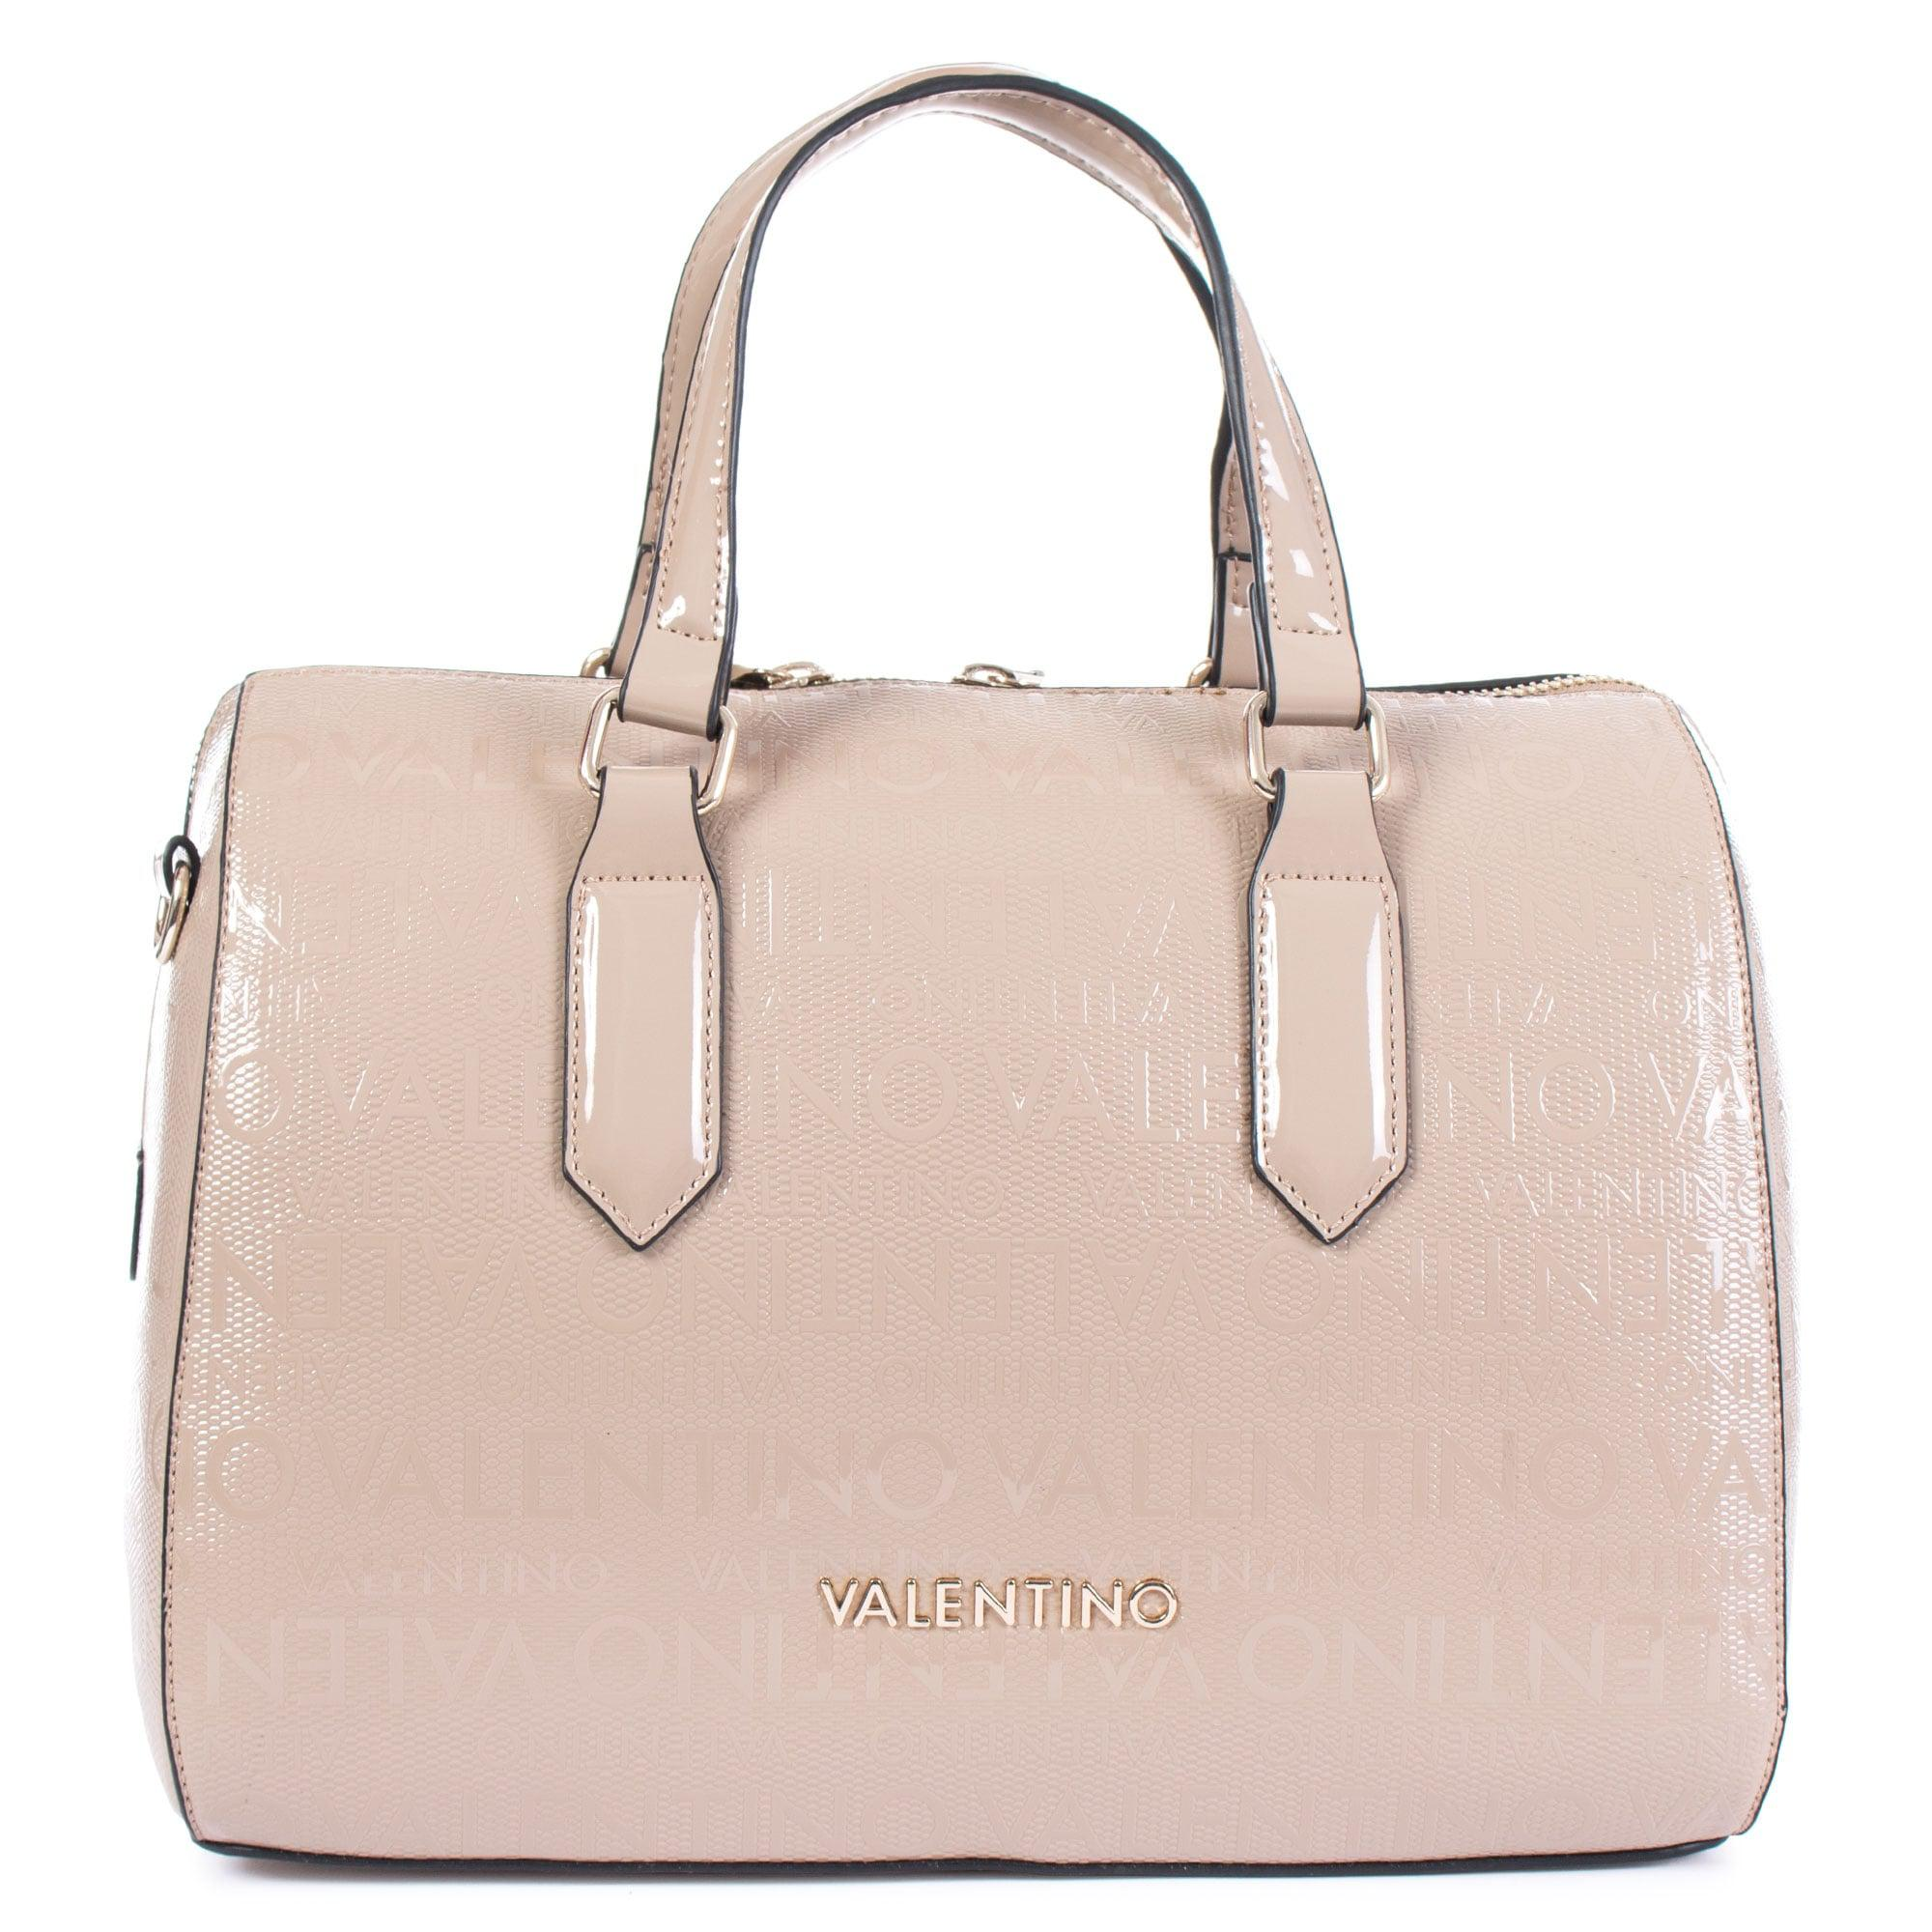 5e5908ad6d05 Valentino By Mario Valentino Clove Glossy Bowling Bag - Lyst